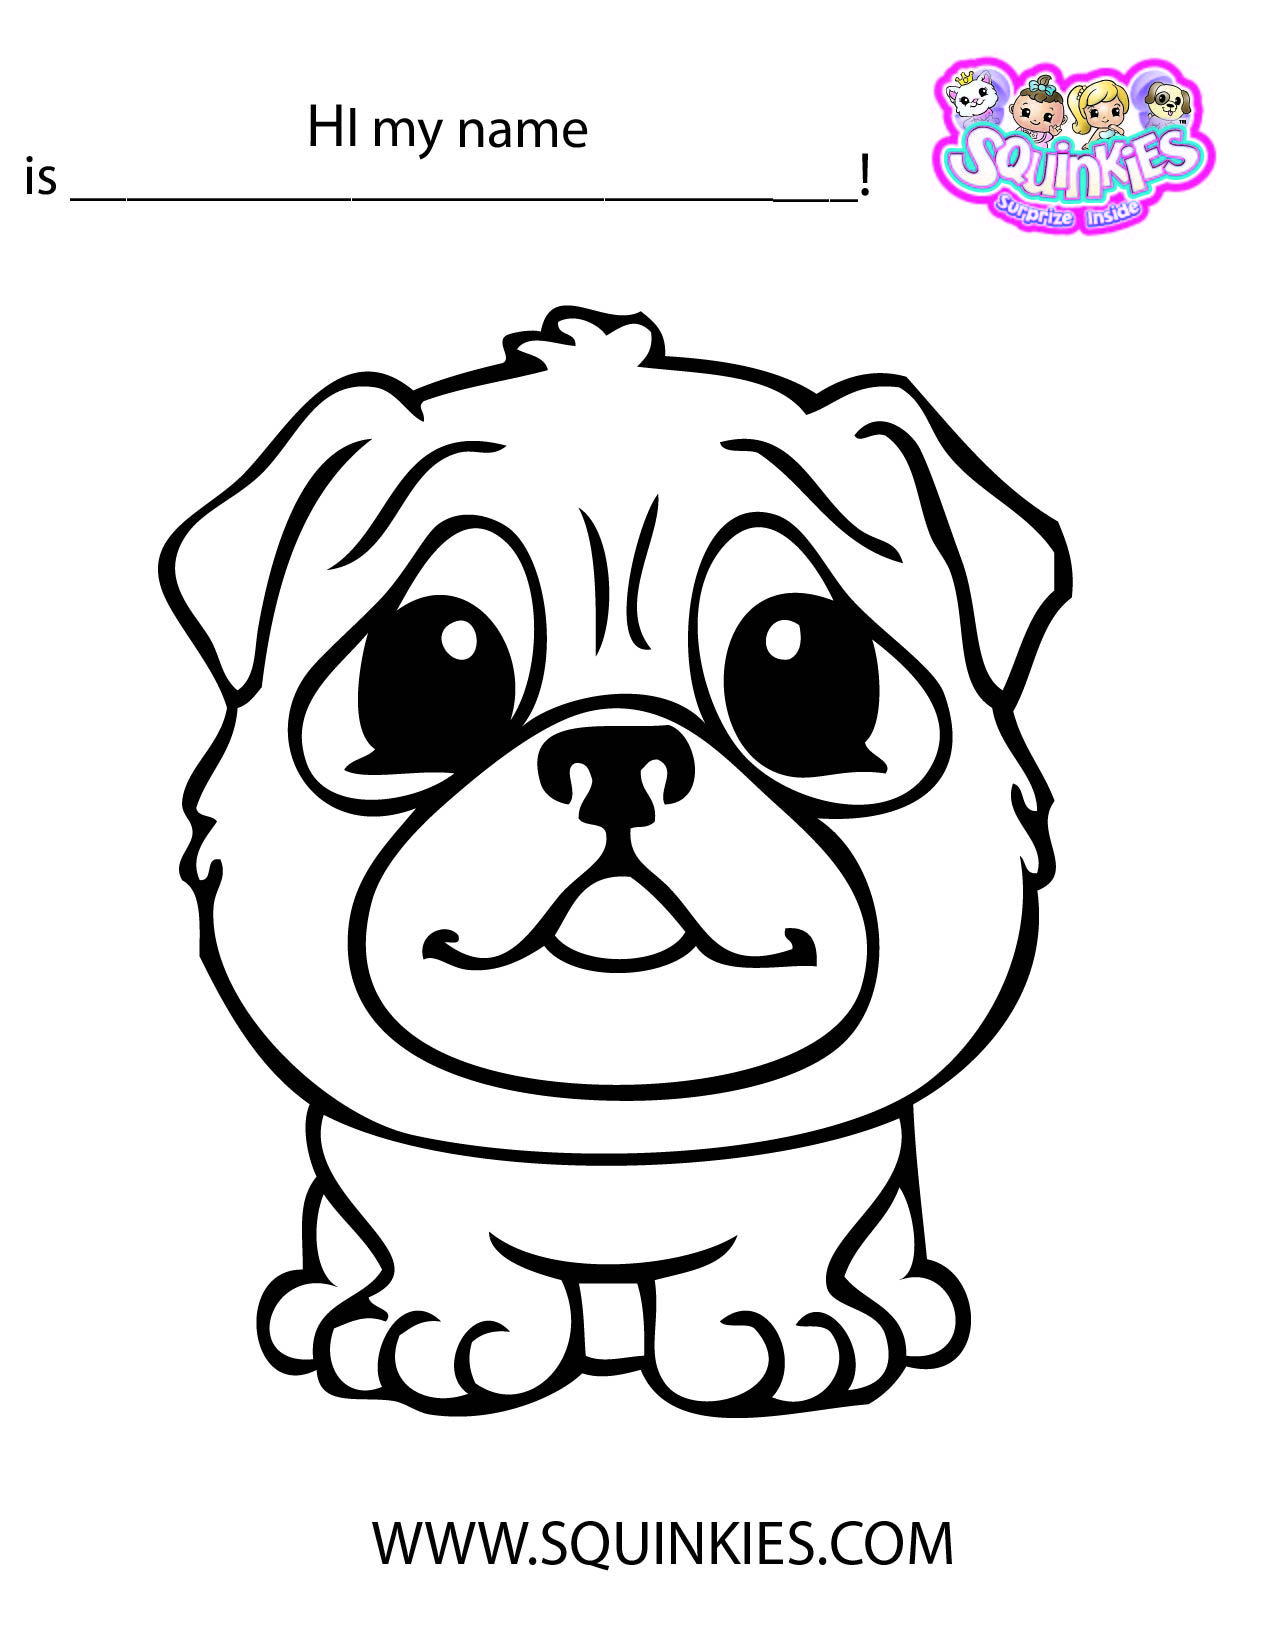 squinkies coloring page squinkies activities pinterest pet